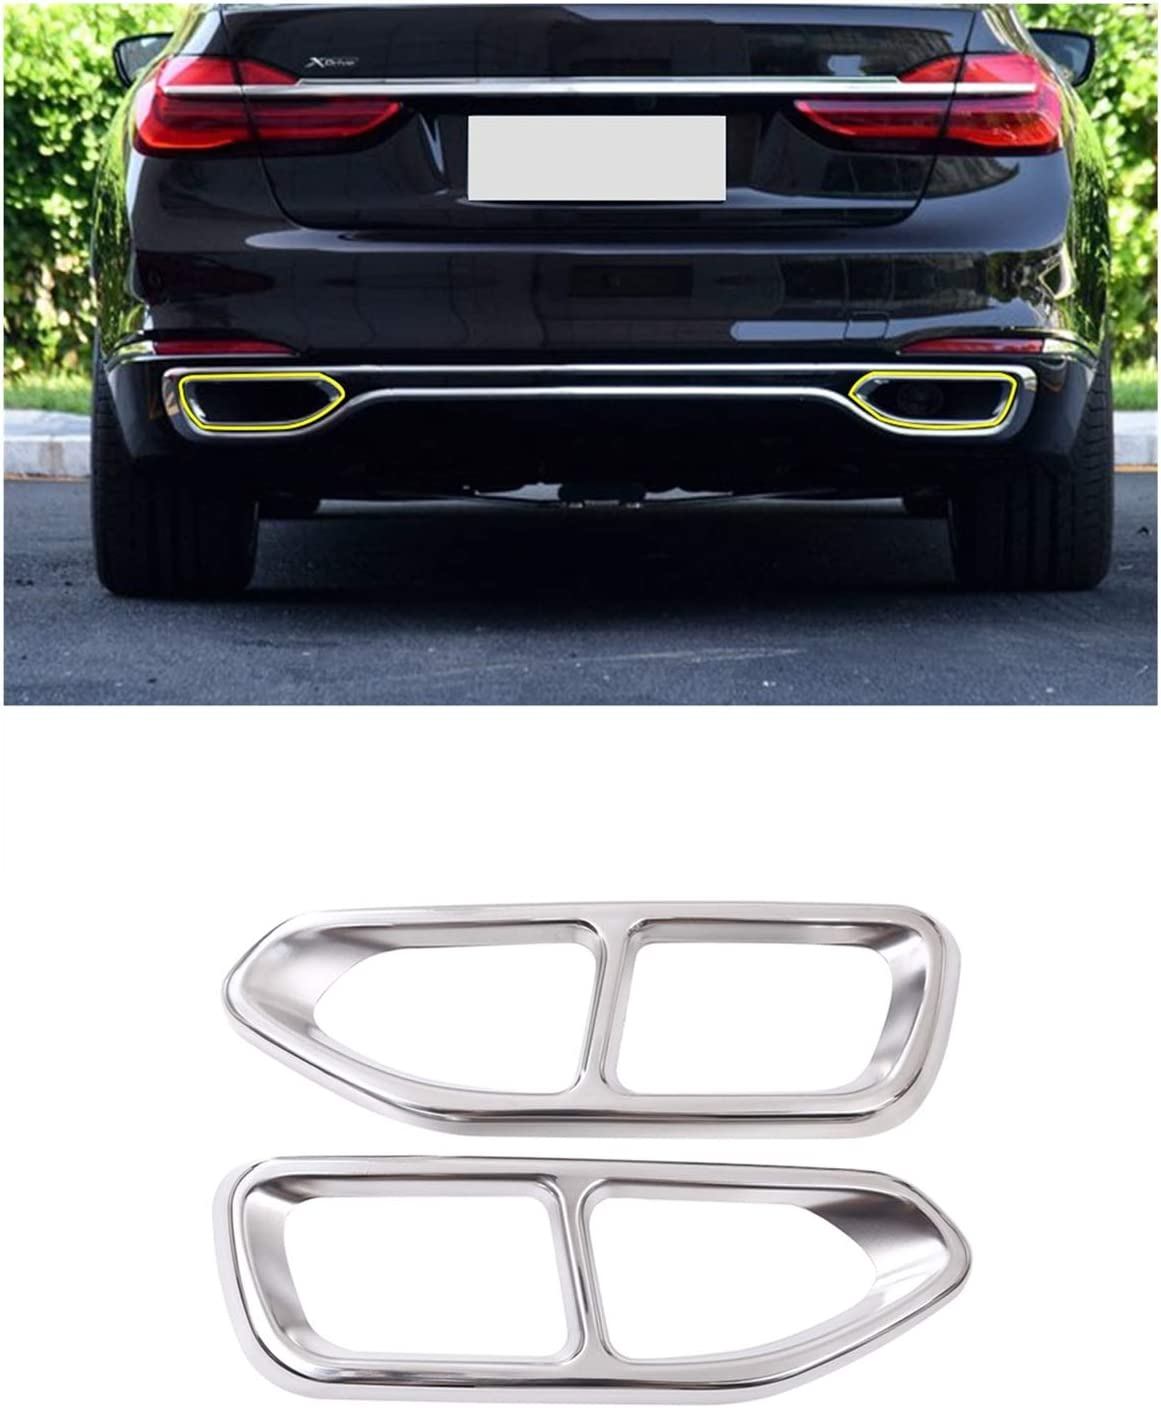 Exhaust Tail Tip for BMW 7 Series G11 2016-201 730 740 High quality Max 85% OFF new G12 750li